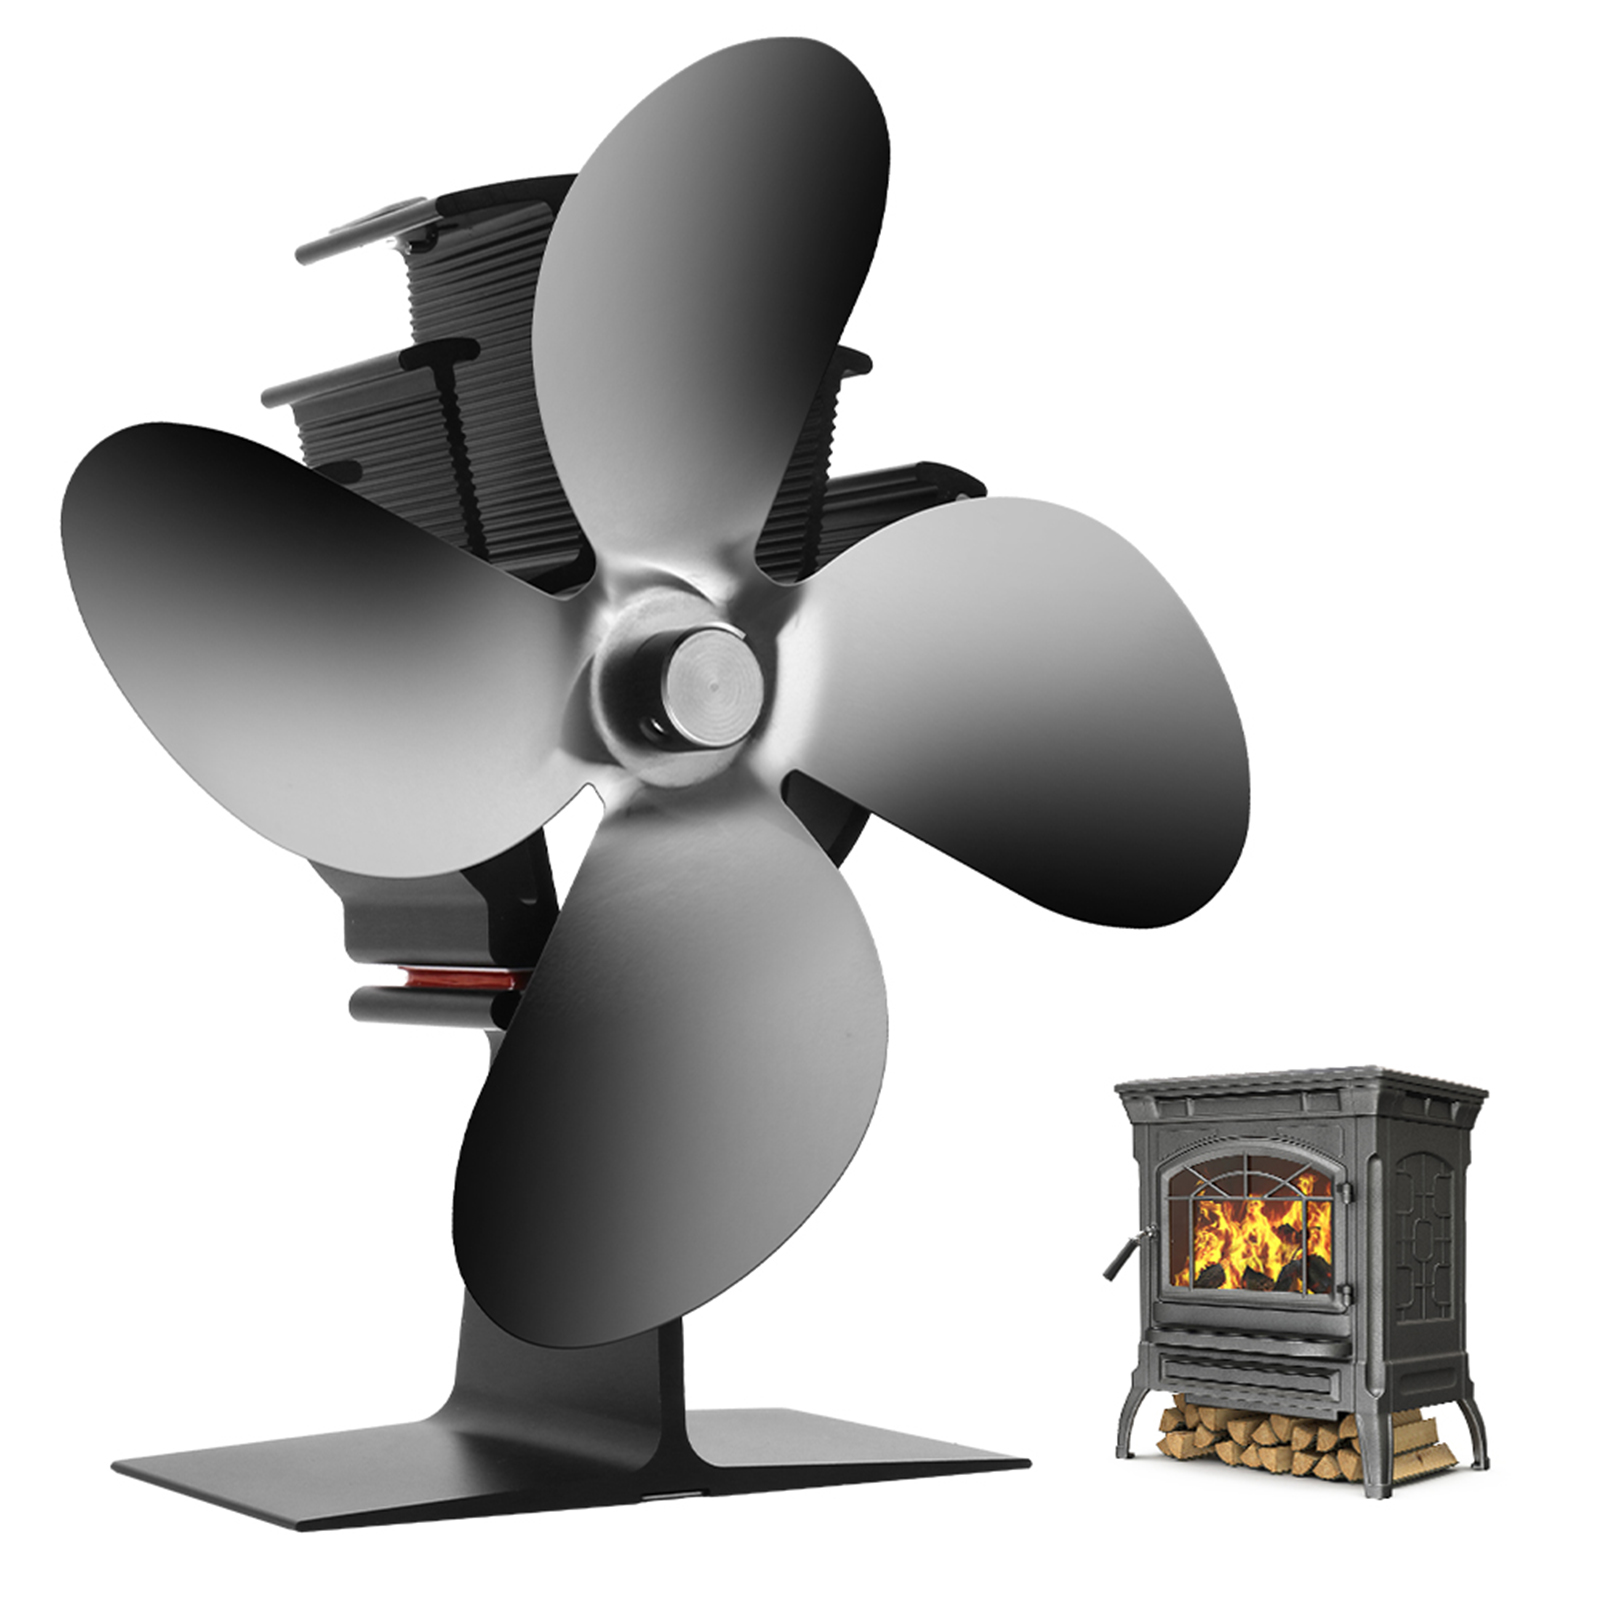 Heat Powered Stove Fan 4 Blades for Home Wood Log Burning Fireplace Accessories Circulating Warm Air Saving Fuel Efficiently Fan